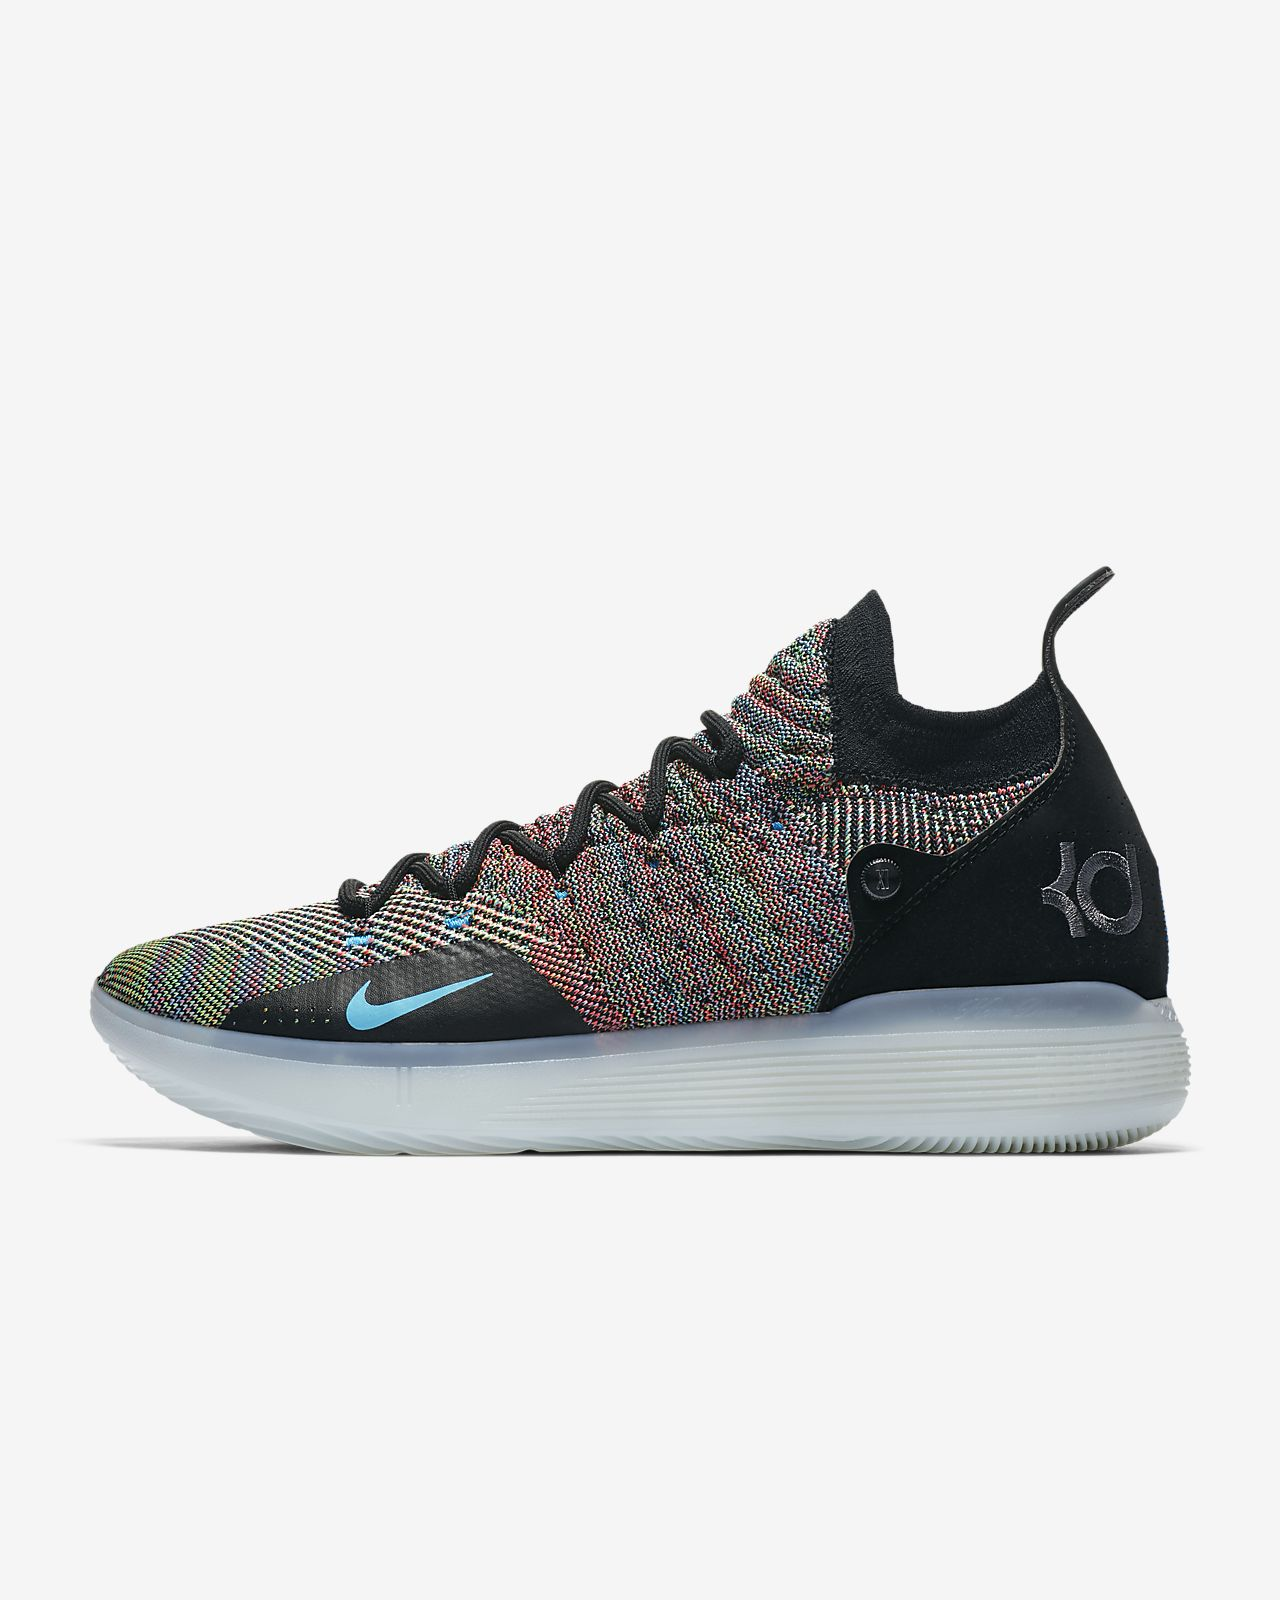 hot sales 5a282 8efcf ... Nike Zoom KD11 Basketball Shoe